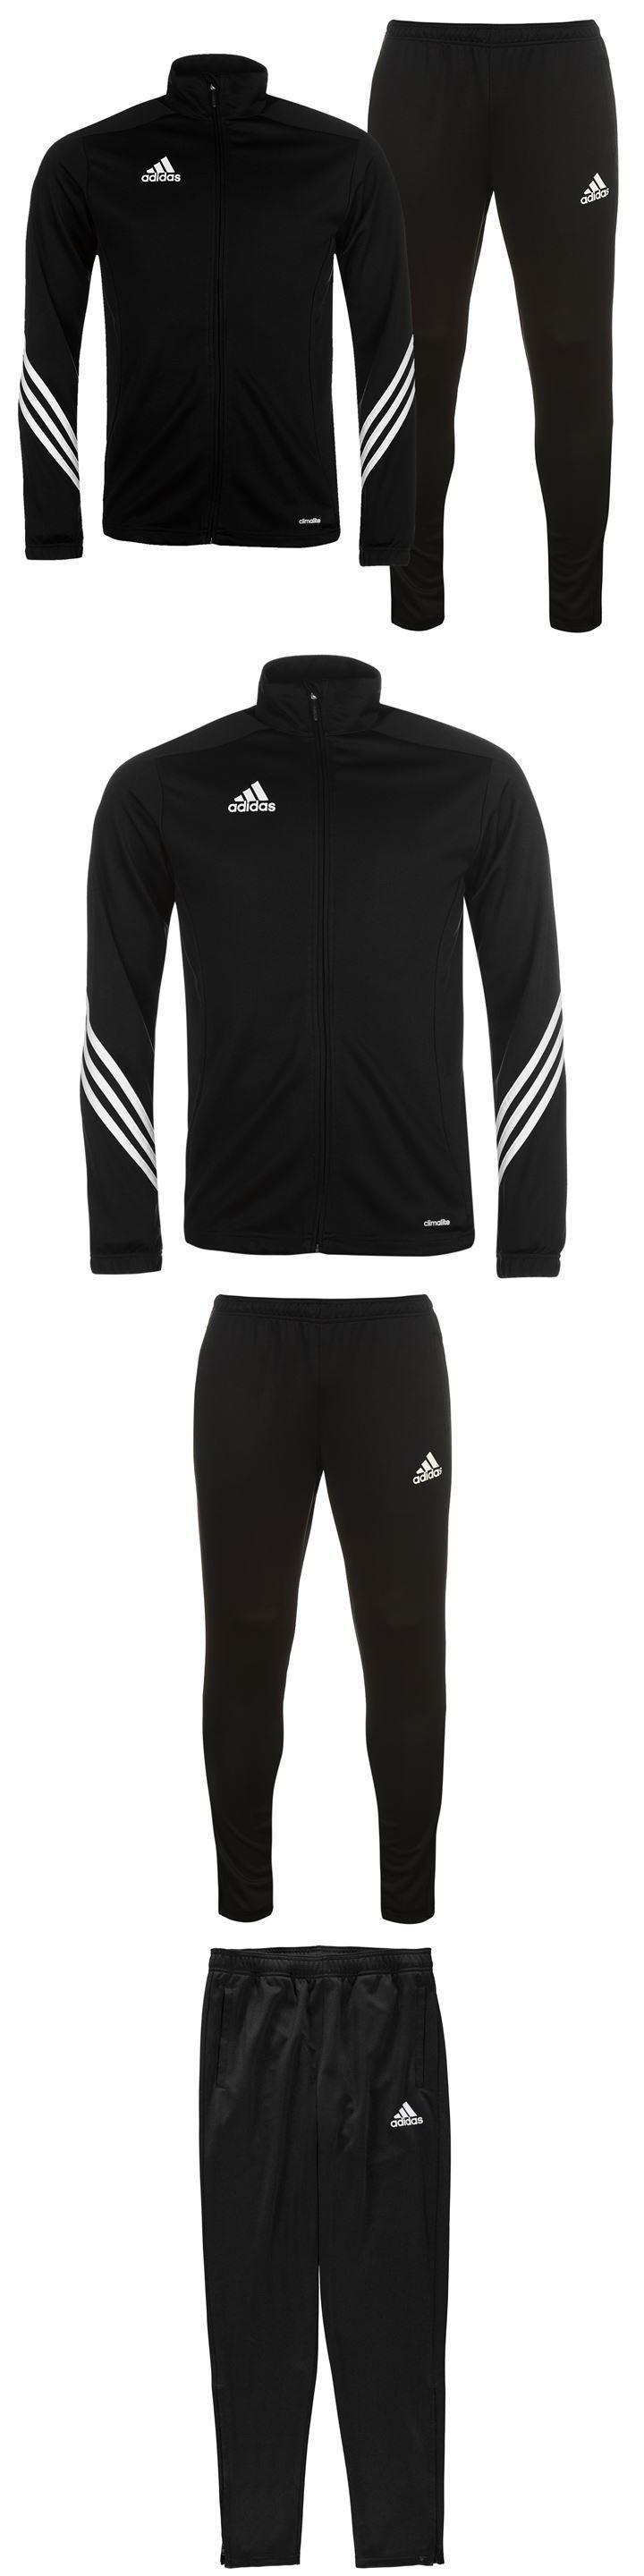 5e3924d89db6 Other Boys Clothes Sizes 4 1067  Adidas Sereno Tracksuit Junior Boys Size  13-14 Years Ref 6238 -  BUY IT NOW ONLY   33.83 on eBay!